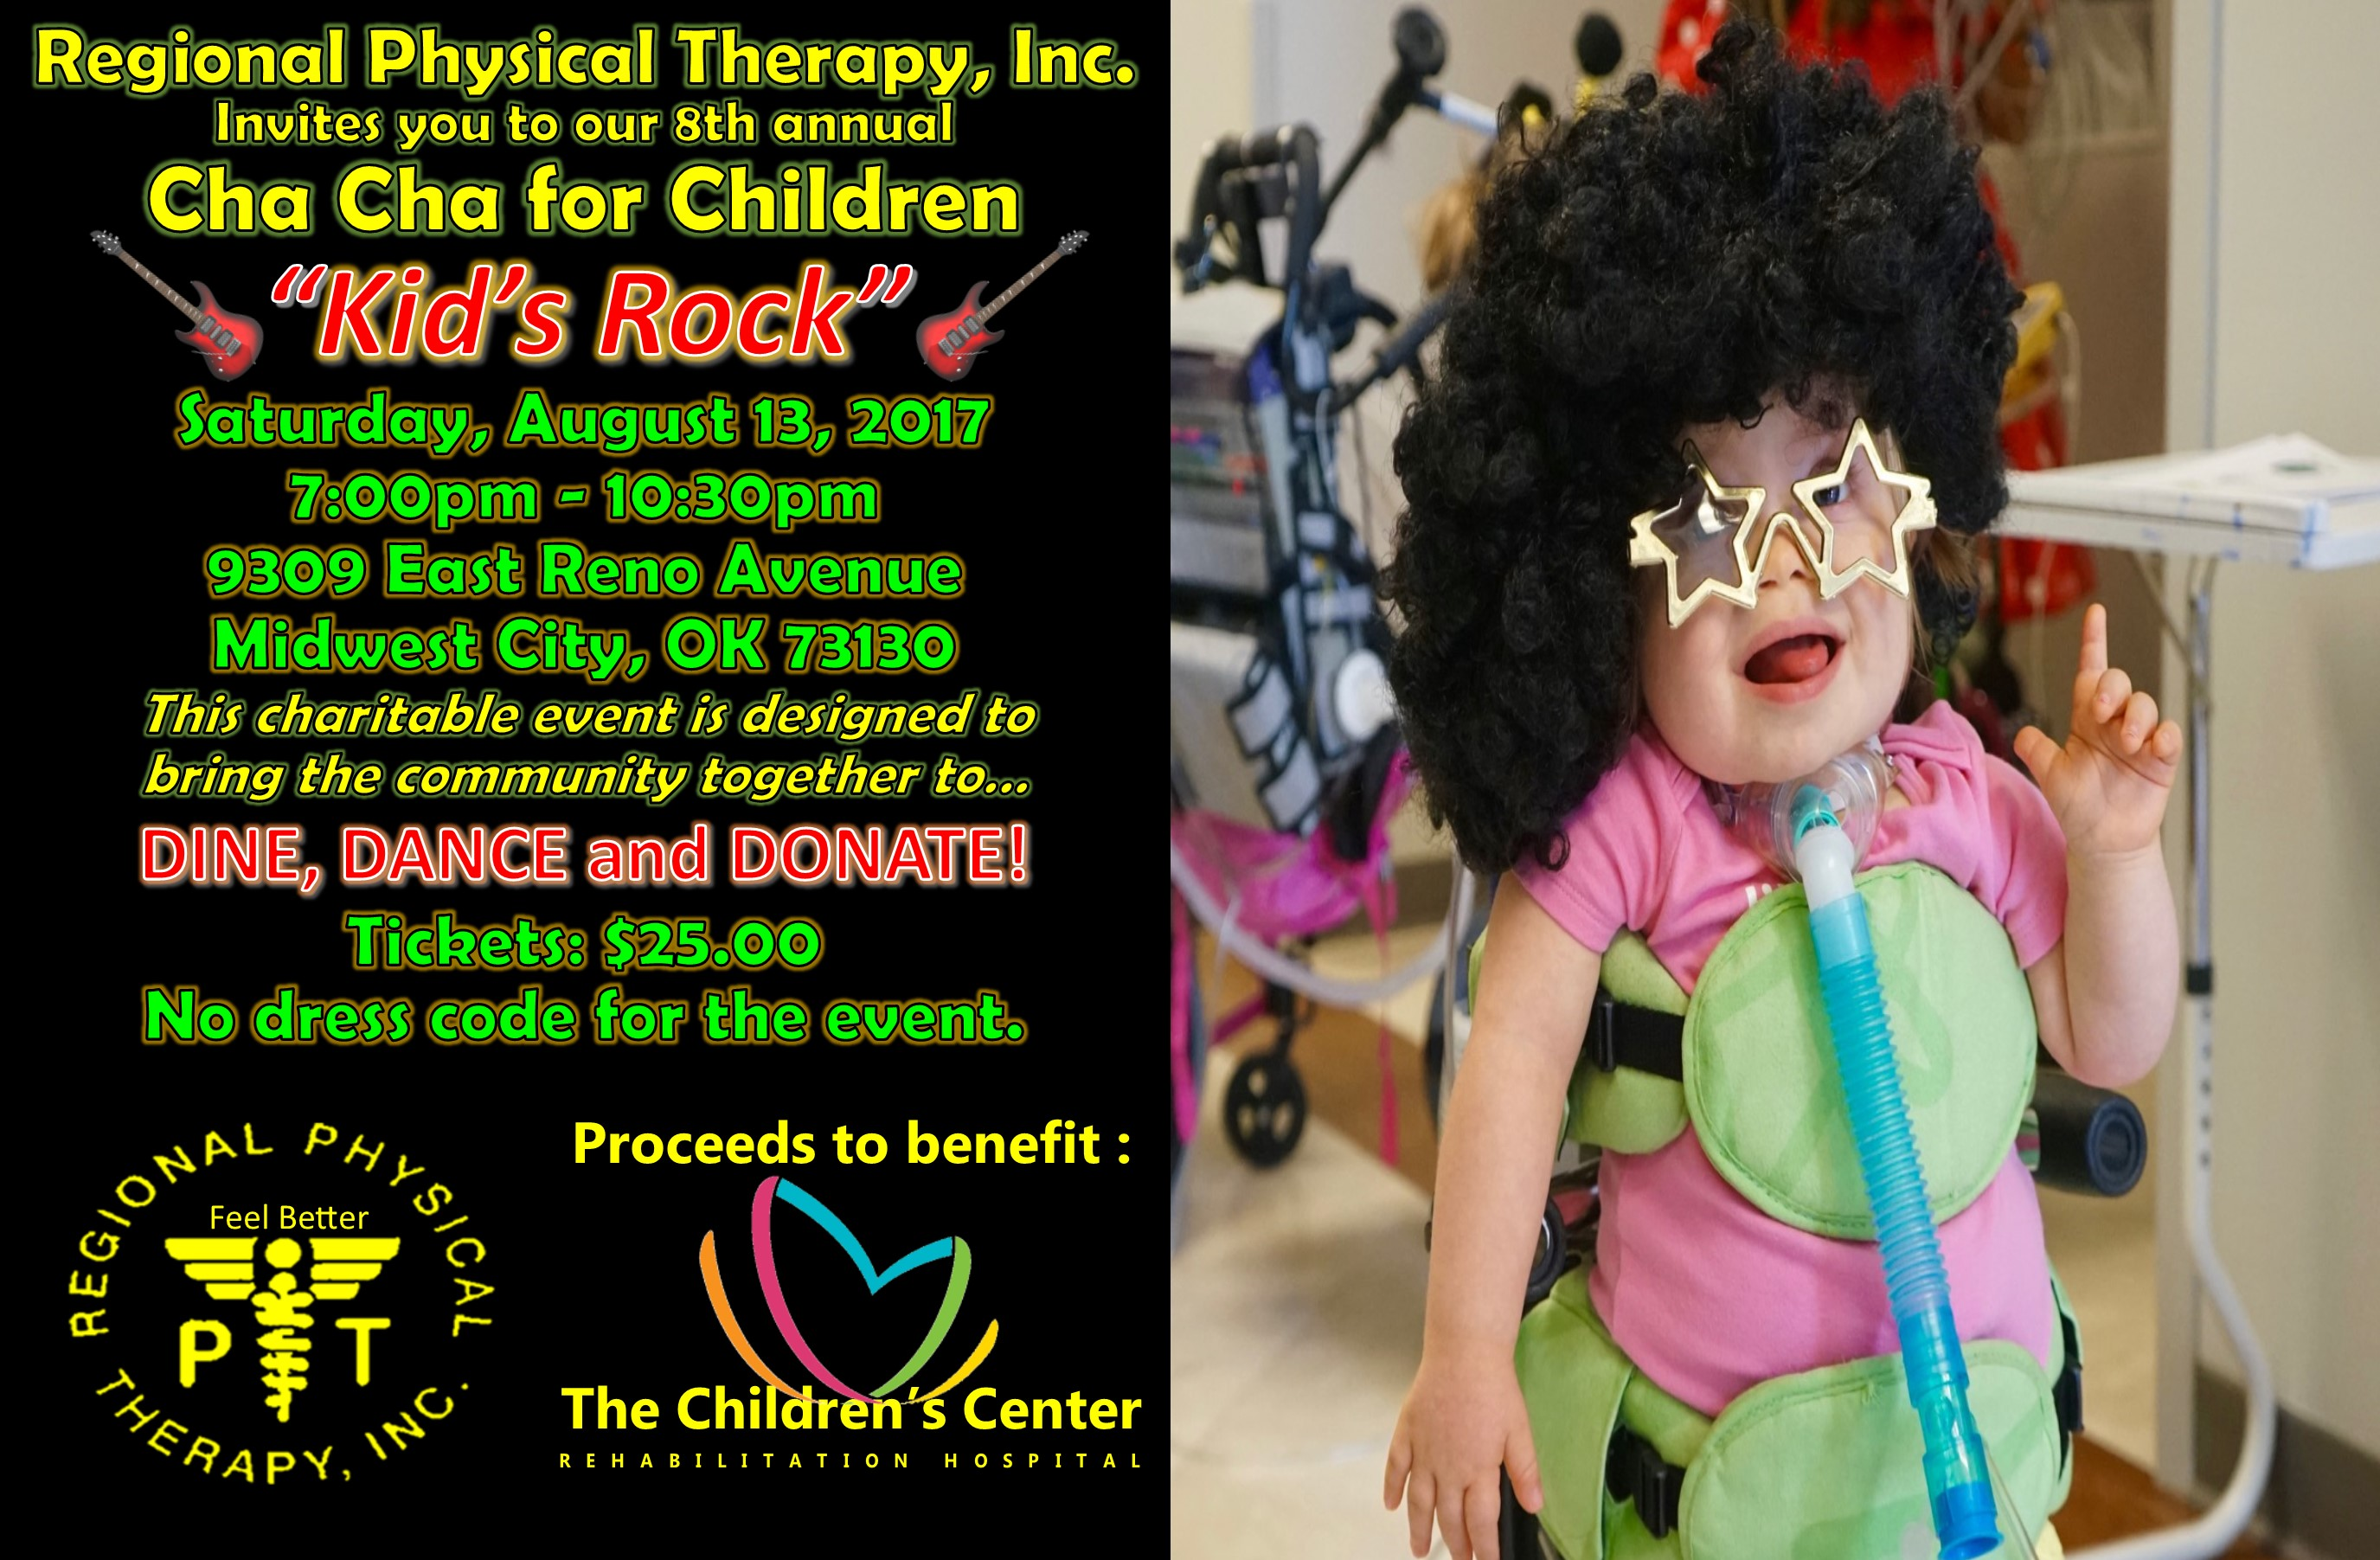 Carbondale oklahoma physical therapy - Individual Tickets Are 25 00 And 8 Person Tables Are 160 Must Be 21 Years Old To Attend Ticket Purchase Includes Dinner Drinks And Dancing